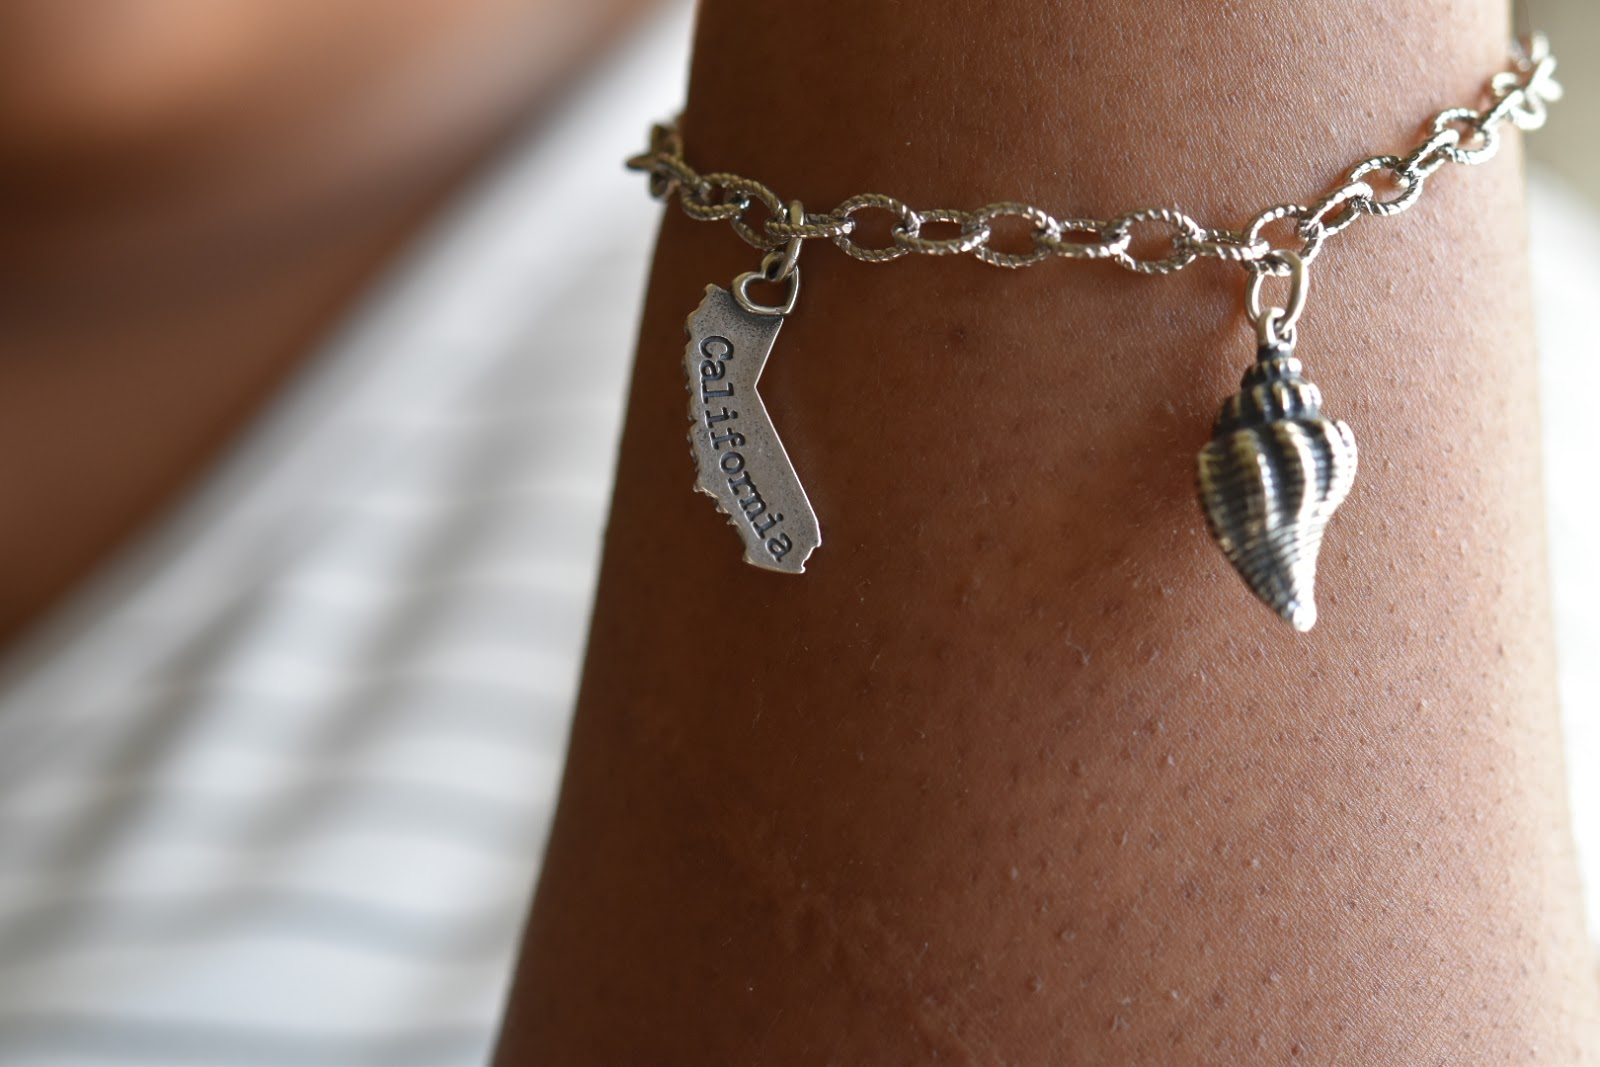 Wearing My Love Story with James Avery  via  www.productreviewmom.com